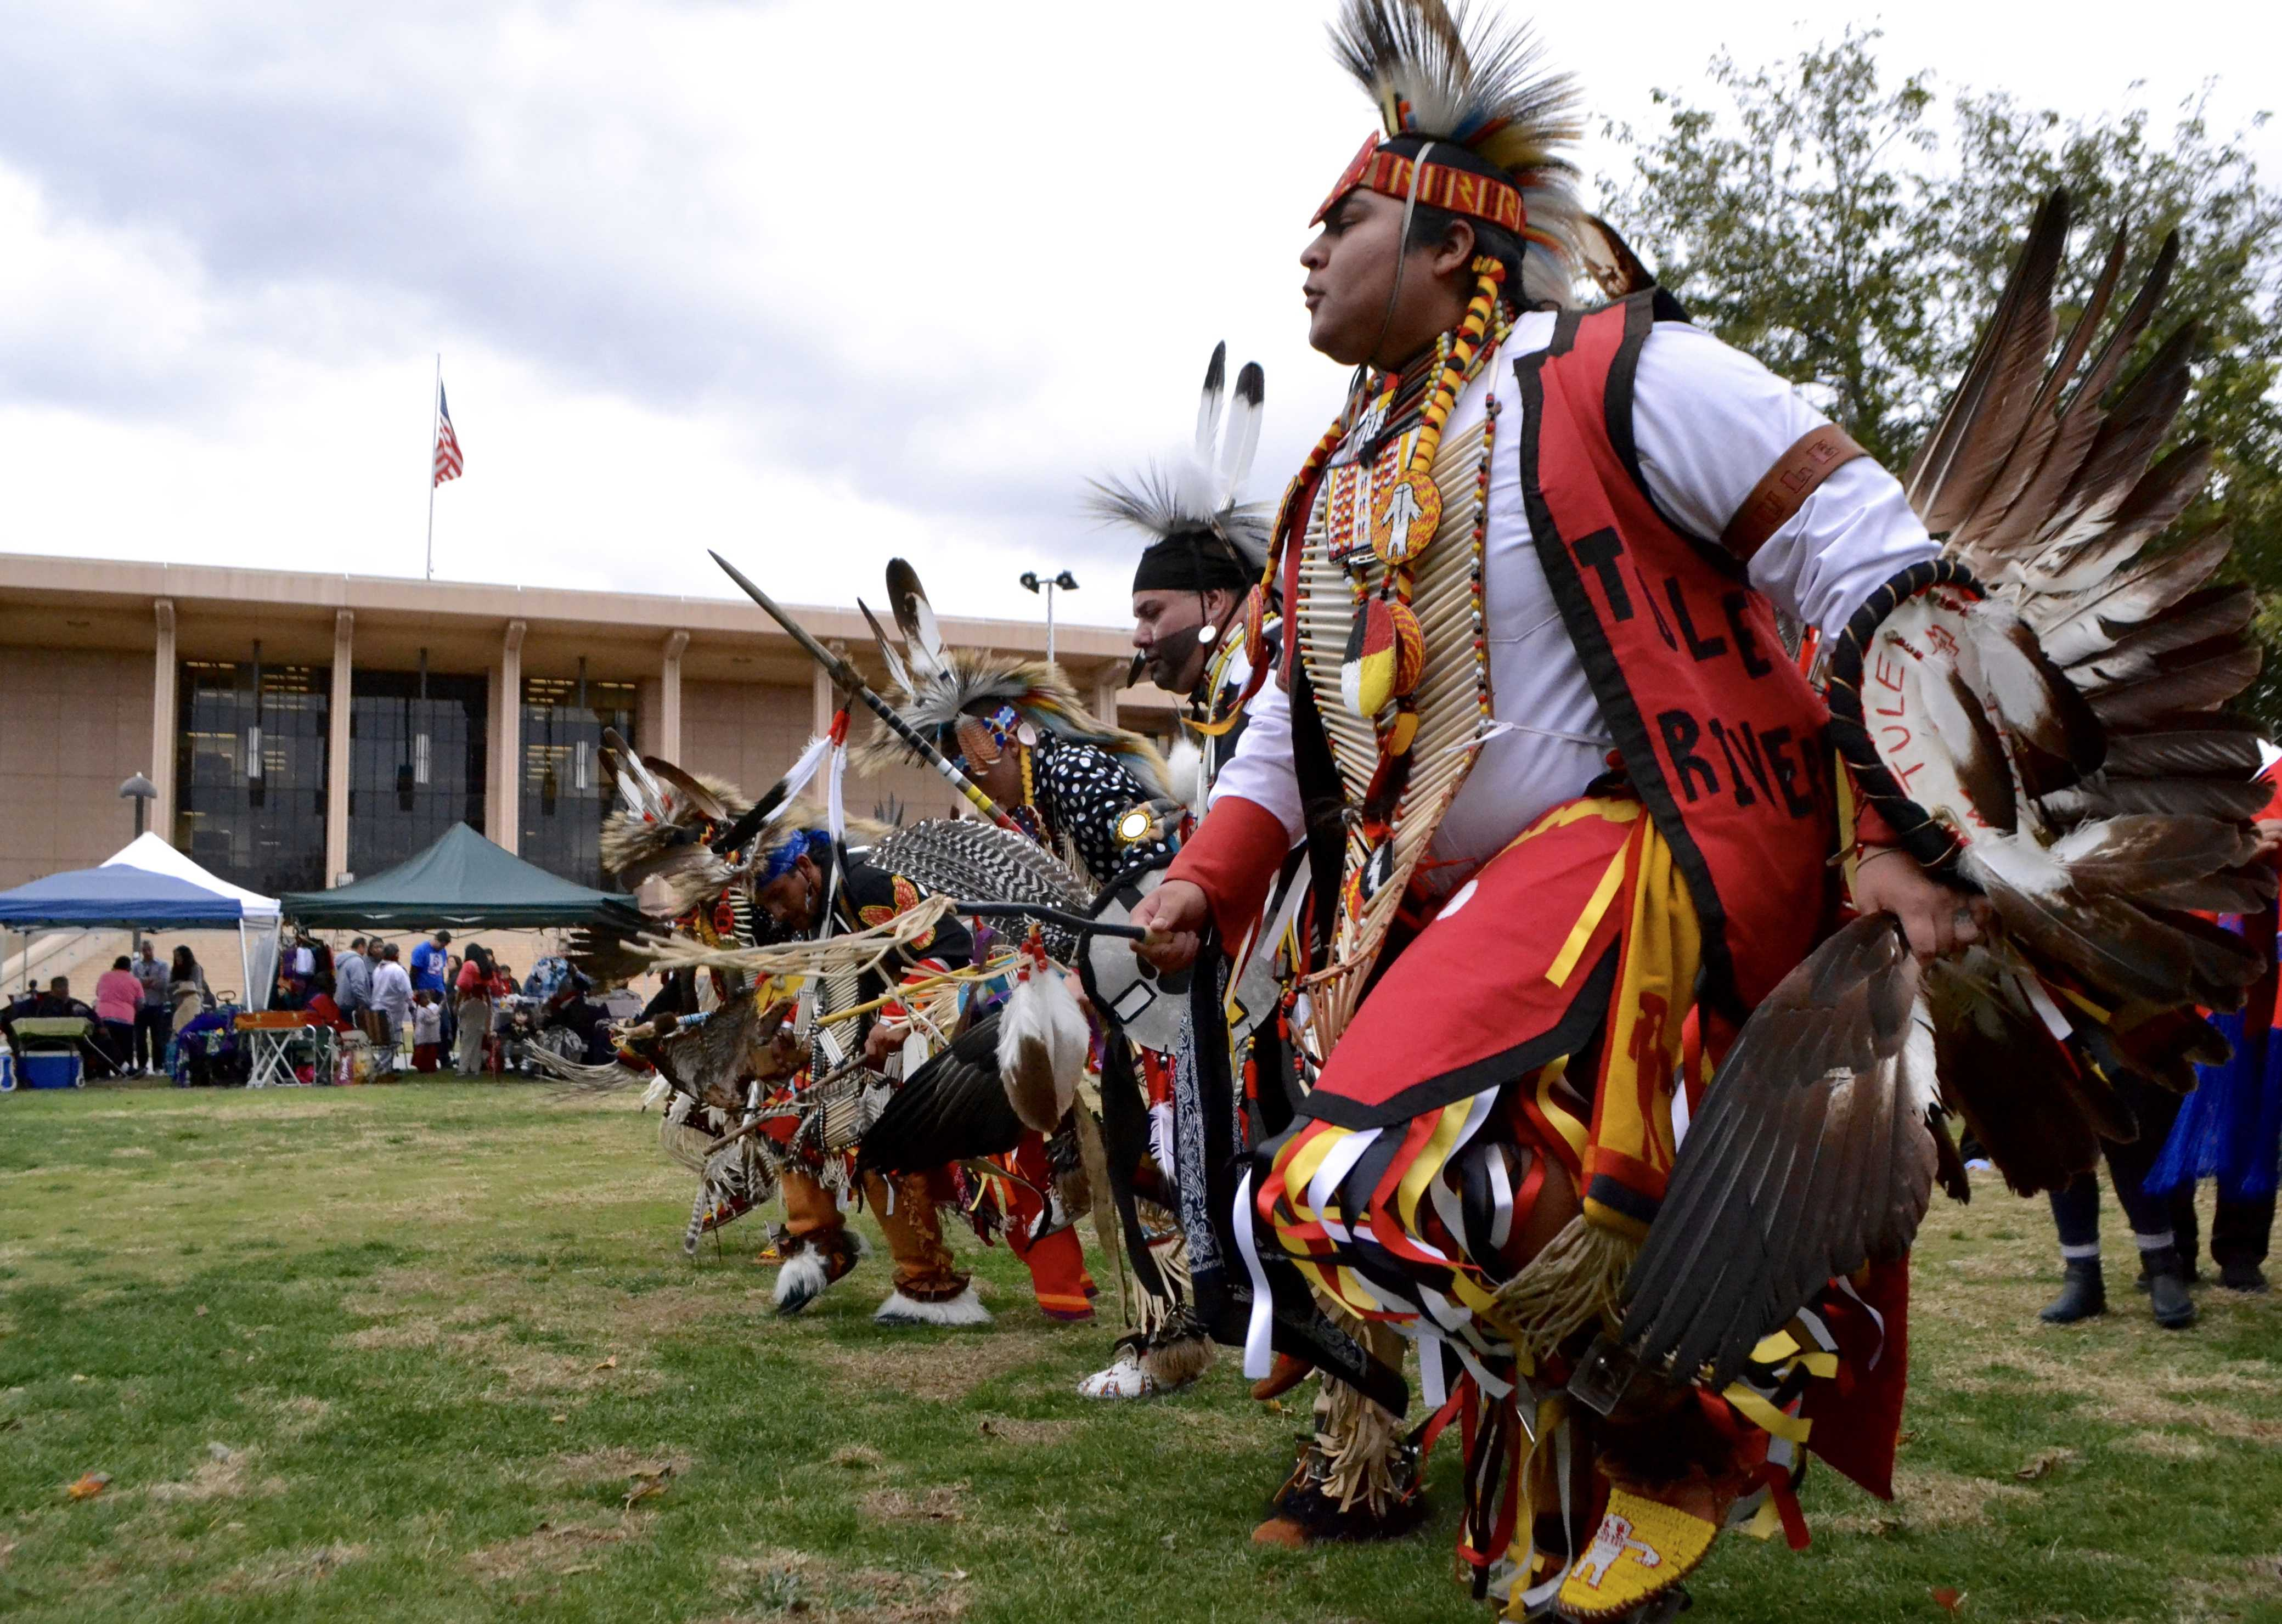 Native American dancers during their grand entry at the CSUN's 33rd Annual Pow Wow November 26, 2016. Photo credit: Stacey Arevalo